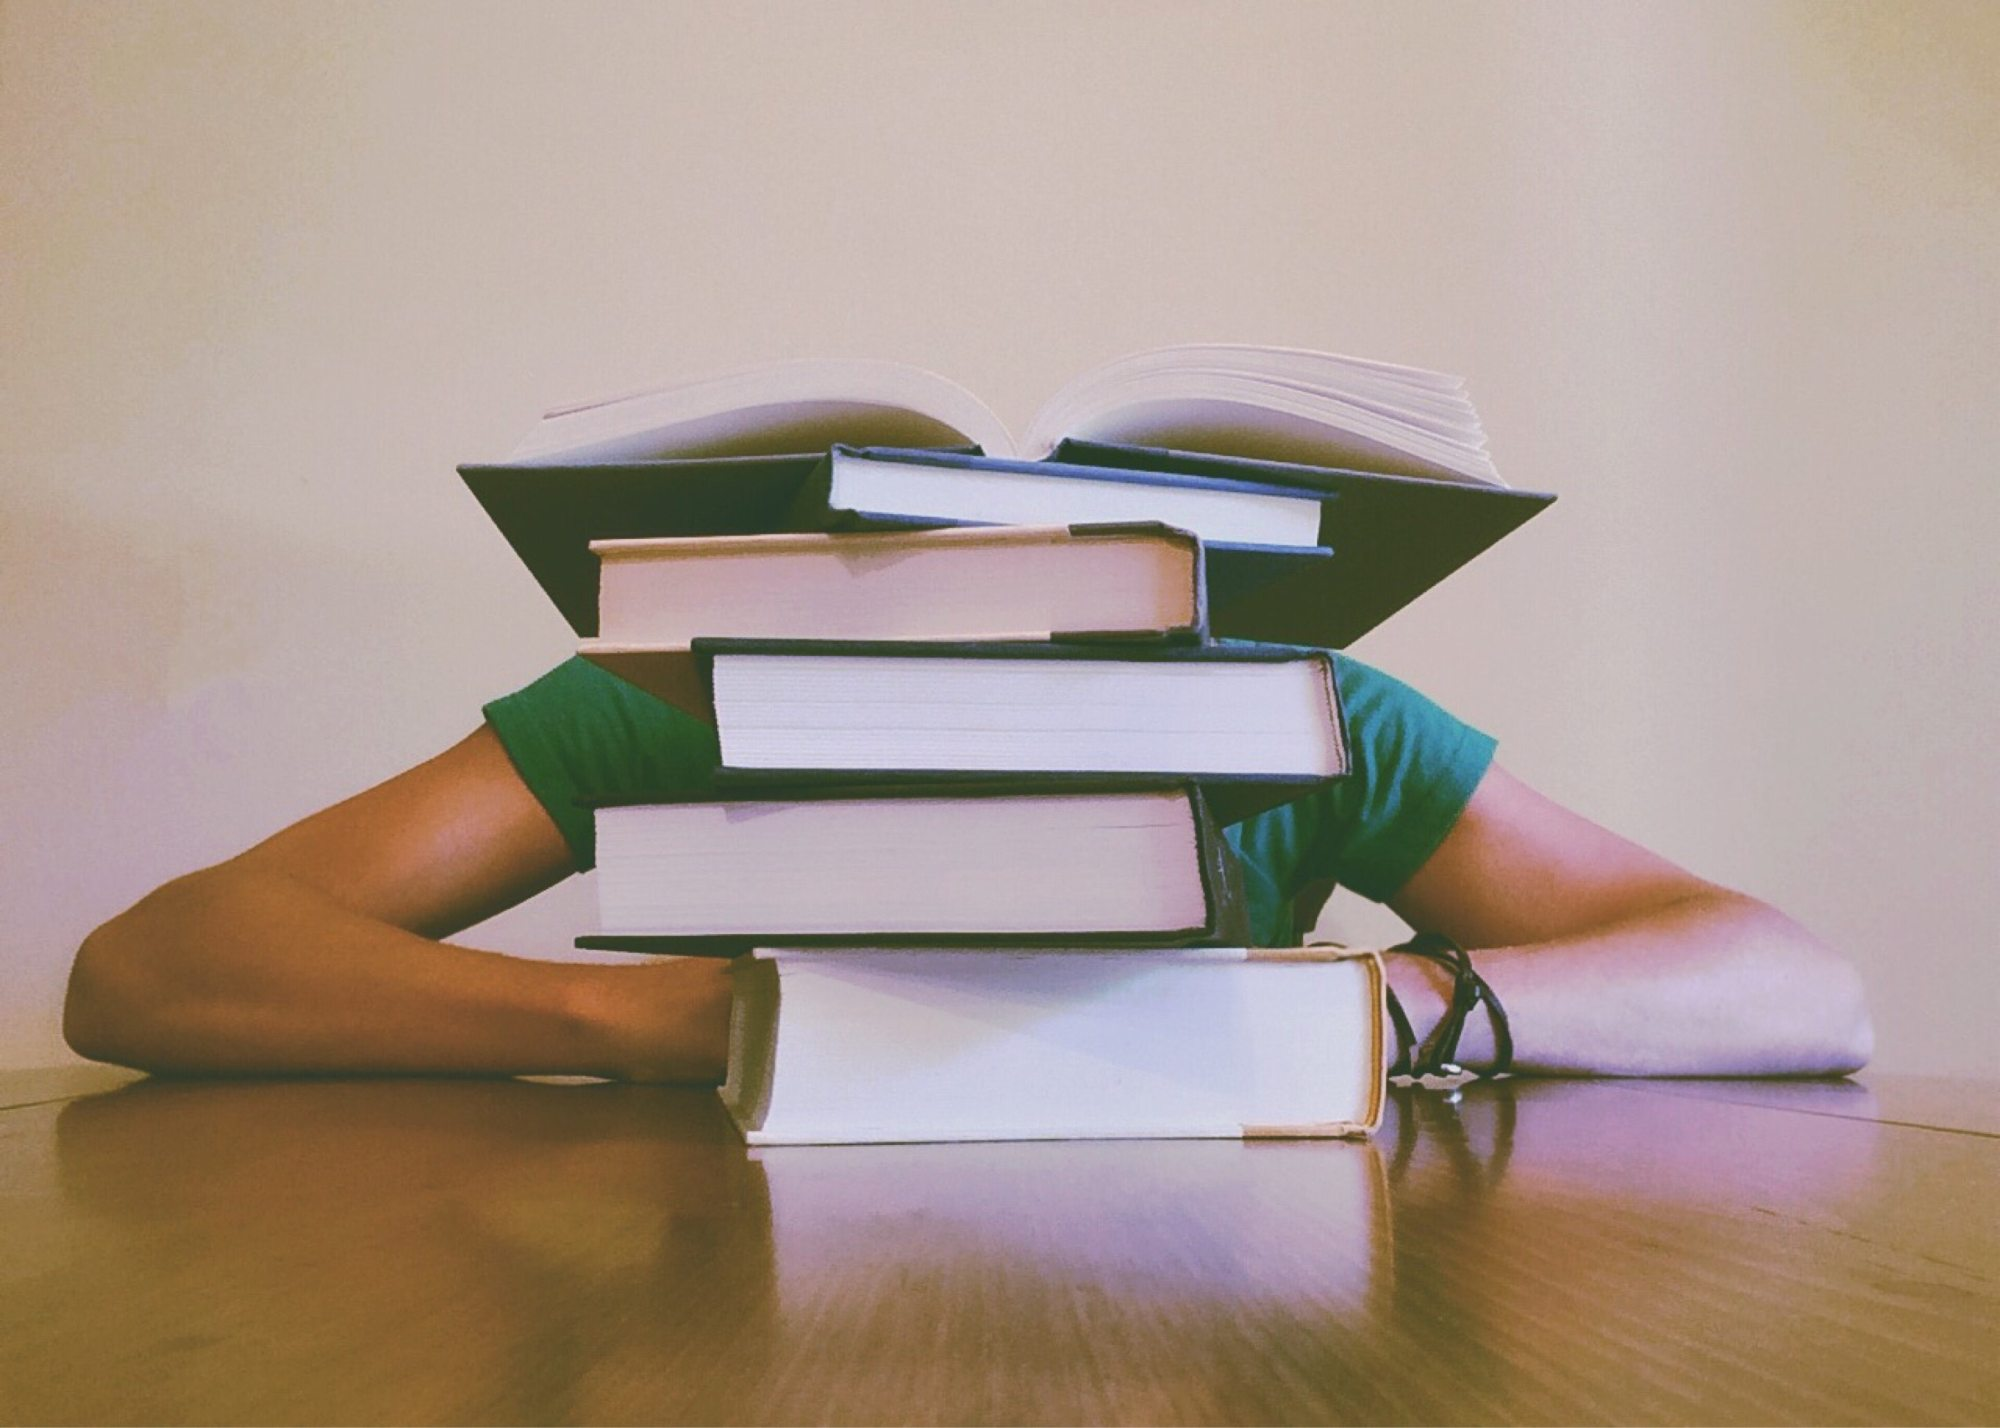 Student behind a stack of books